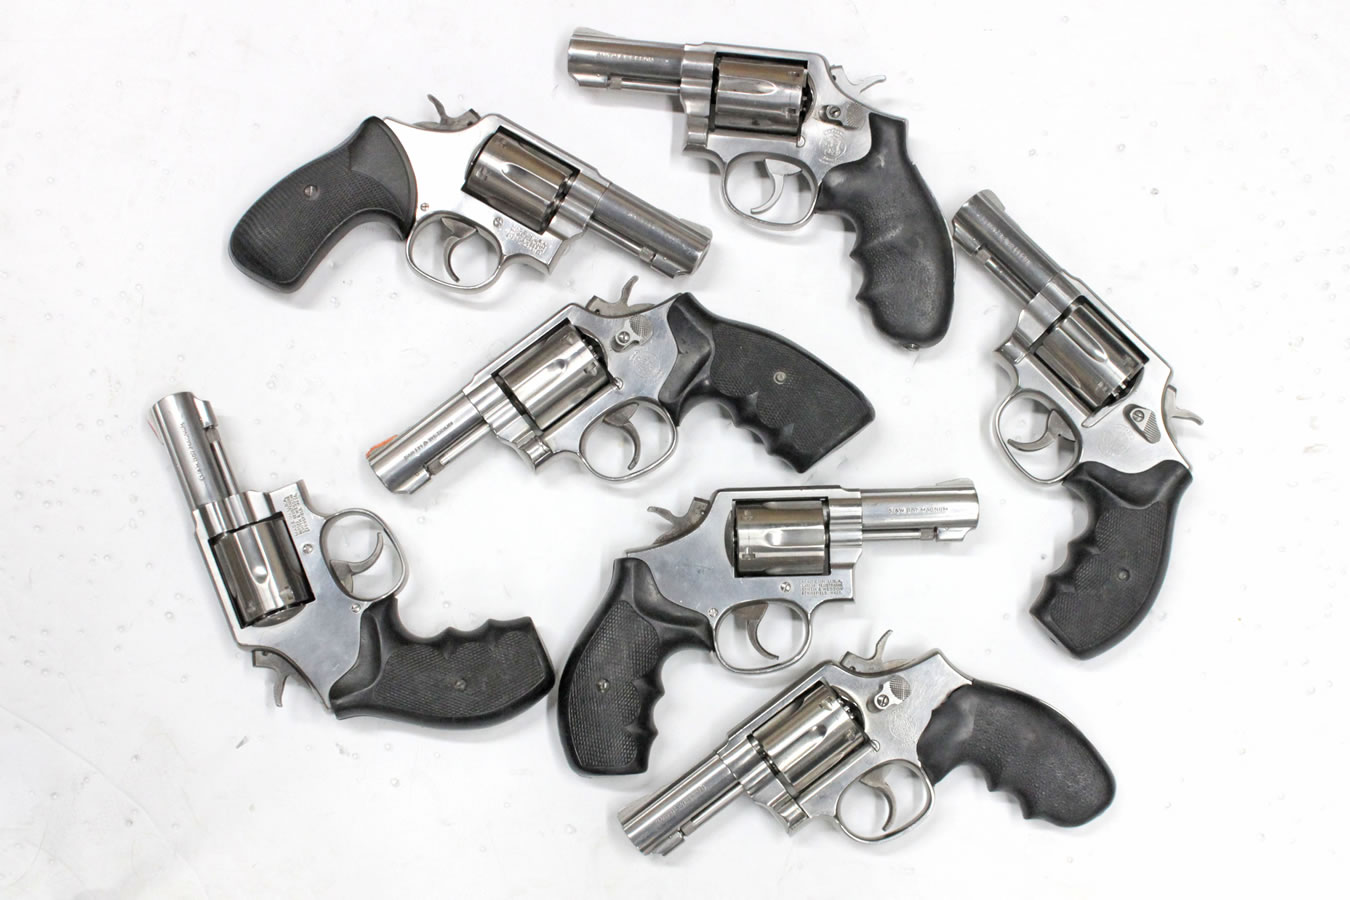 MODEL 65 357 MAGNUM POLICE TRADE-INS